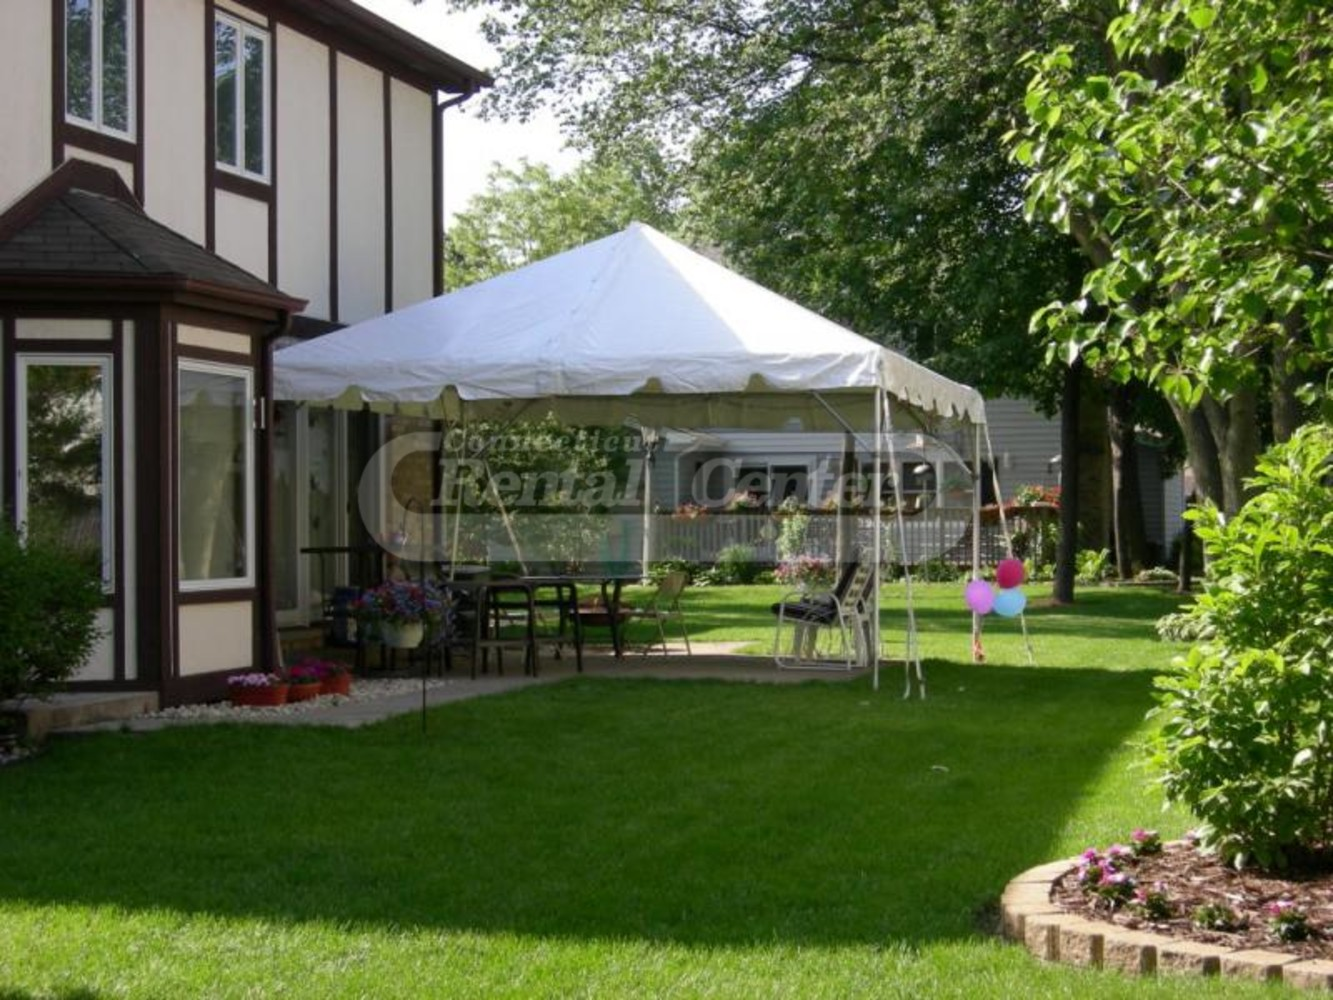 Rent 16 X 16 Frame Tents From Ct Rental Center